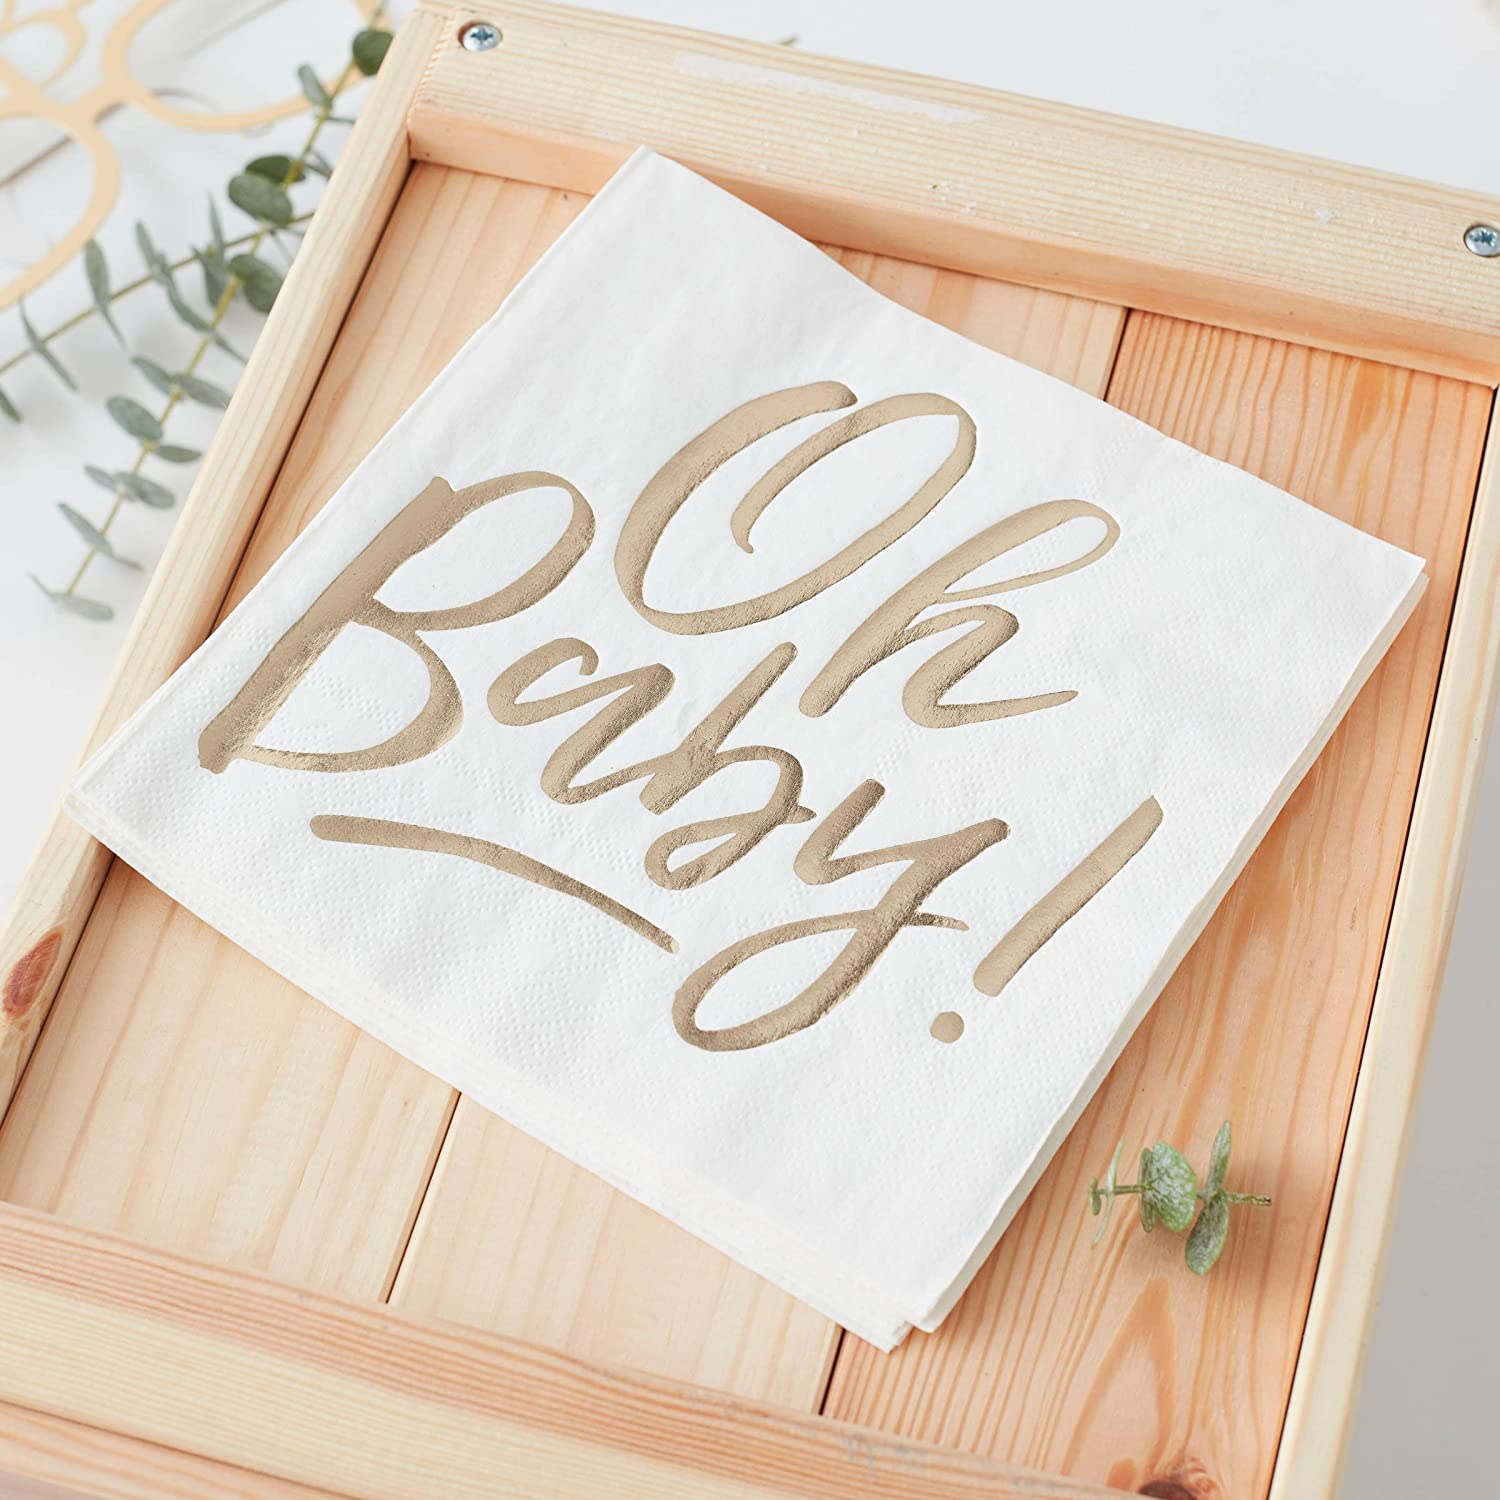 OH BABY! GOLD FOILED OH BABY PAPER NAPKINS